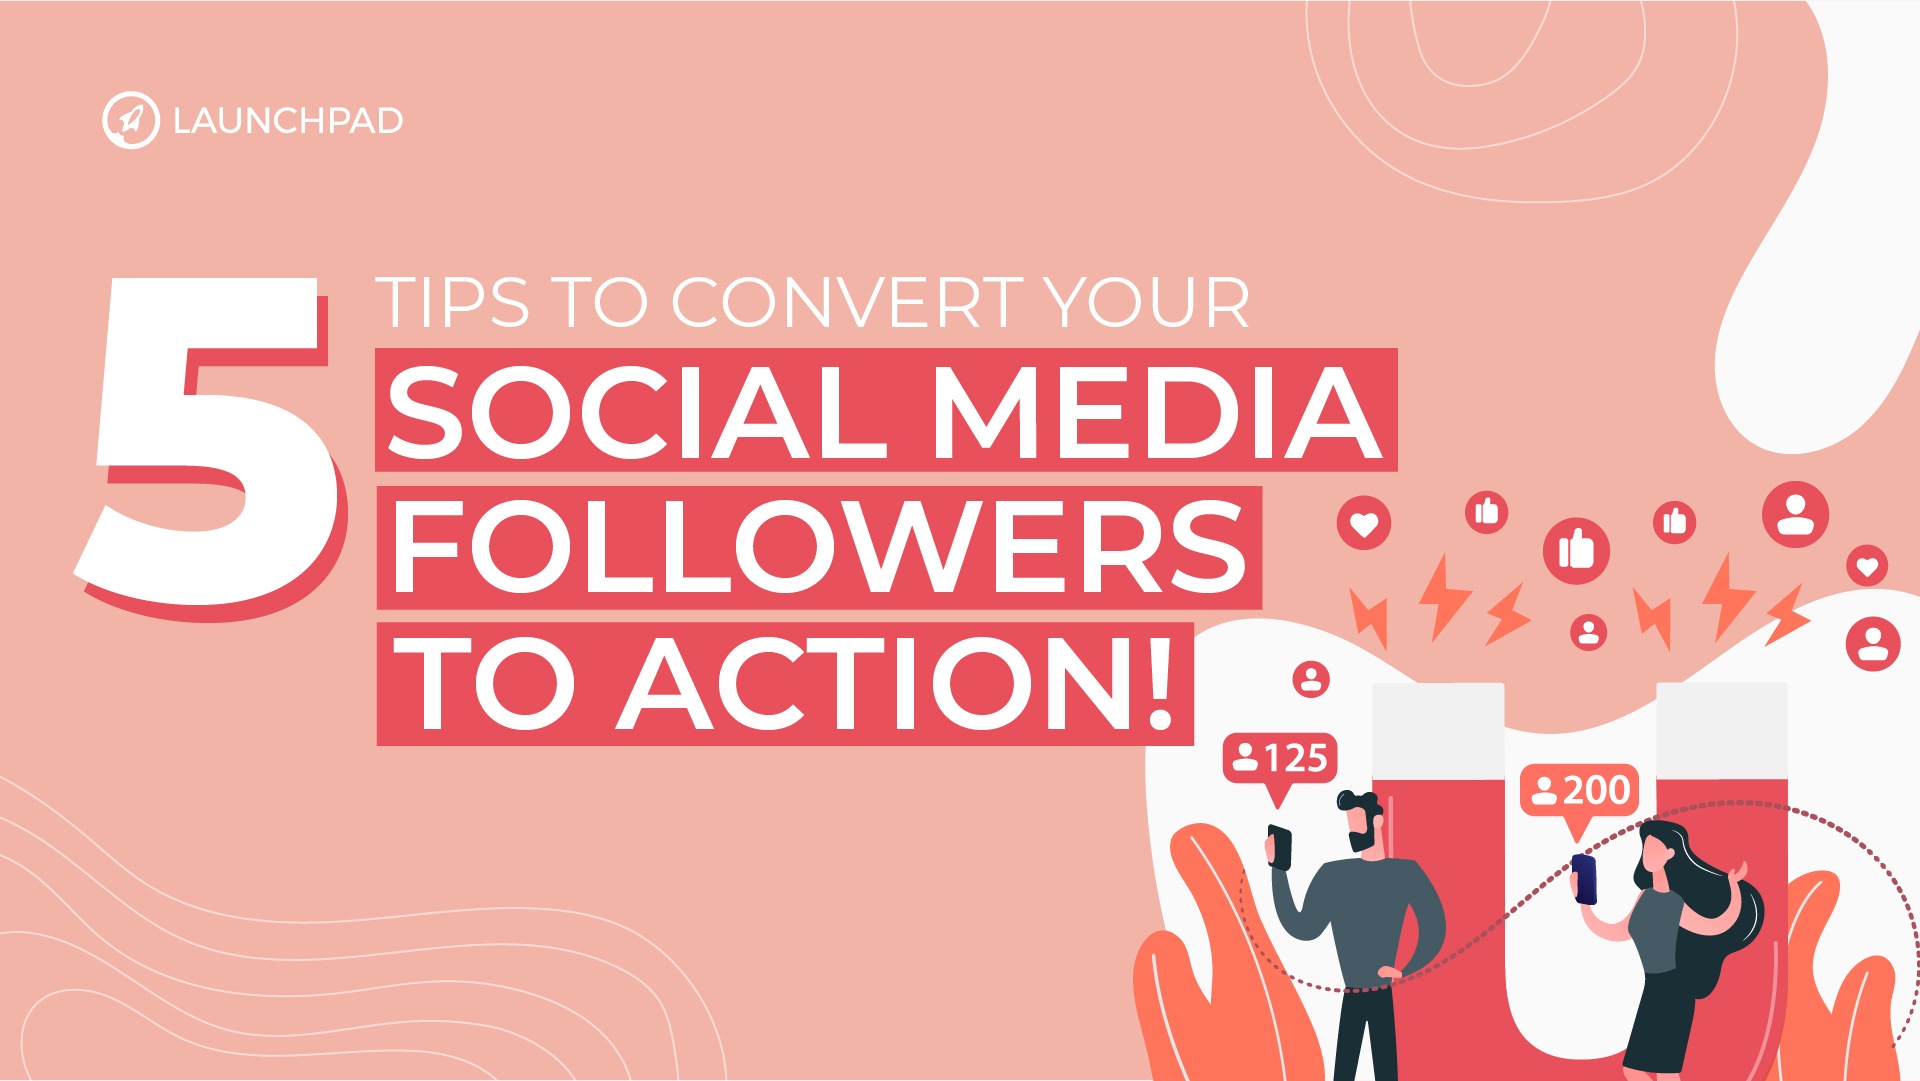 Blog[SM]-5 Tips to Convert Your Social Media Followers to Action!-02